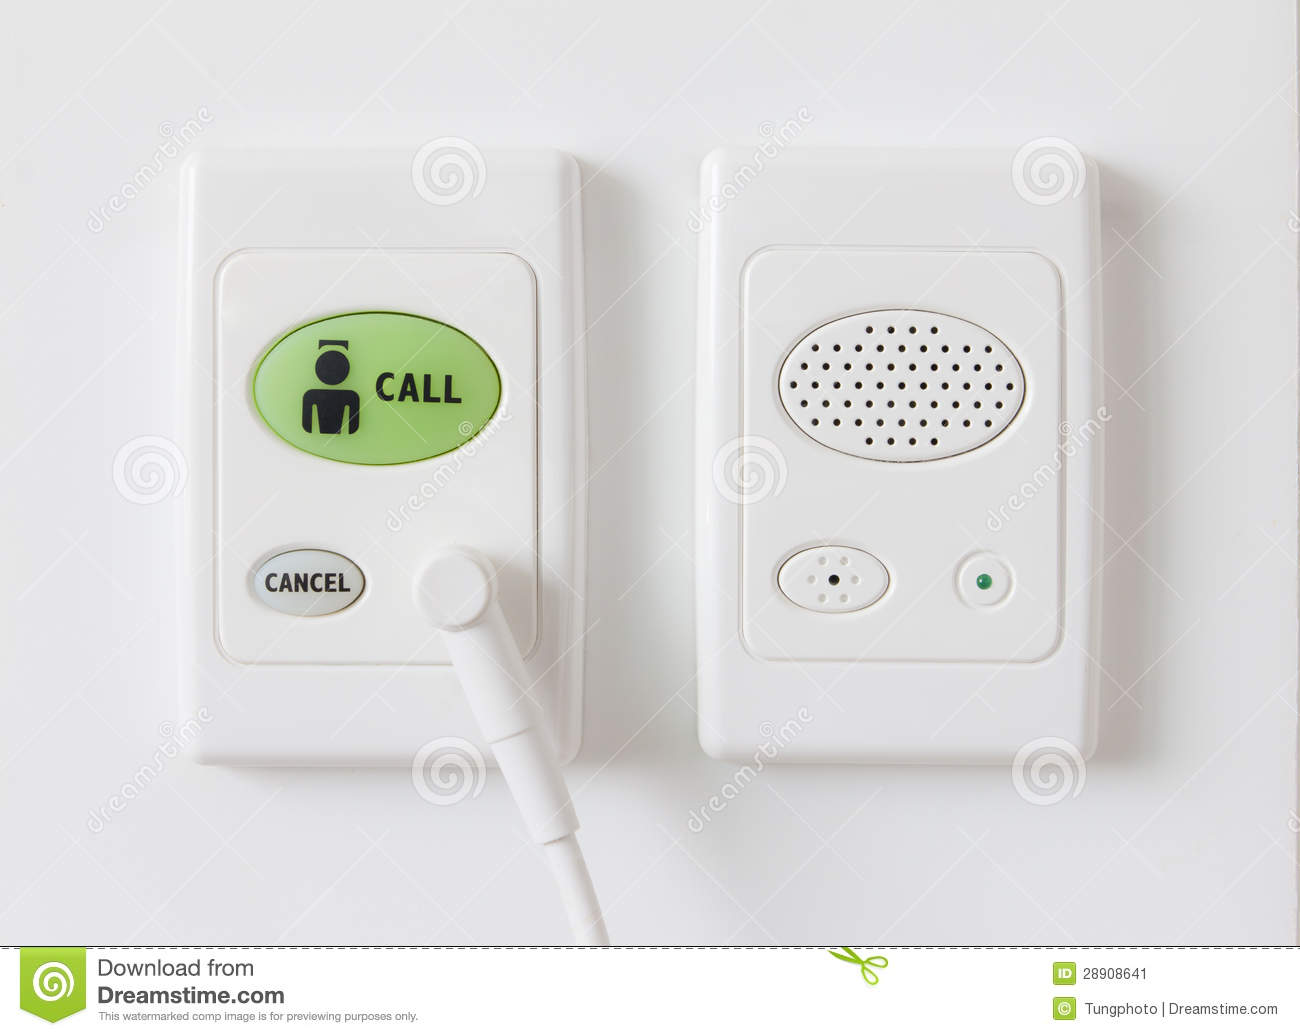 Hikvision 2mp Wdr Vari Focal Bullet  work Camera Ds 2cd2622fwd I 824 P together with Plot Overview Of The Great Gatsby as well Fire Safety Signs likewise Gamewell Restoration Kit For The Fire Alarm 231746445410 further Fire Department. on fire alarm call box